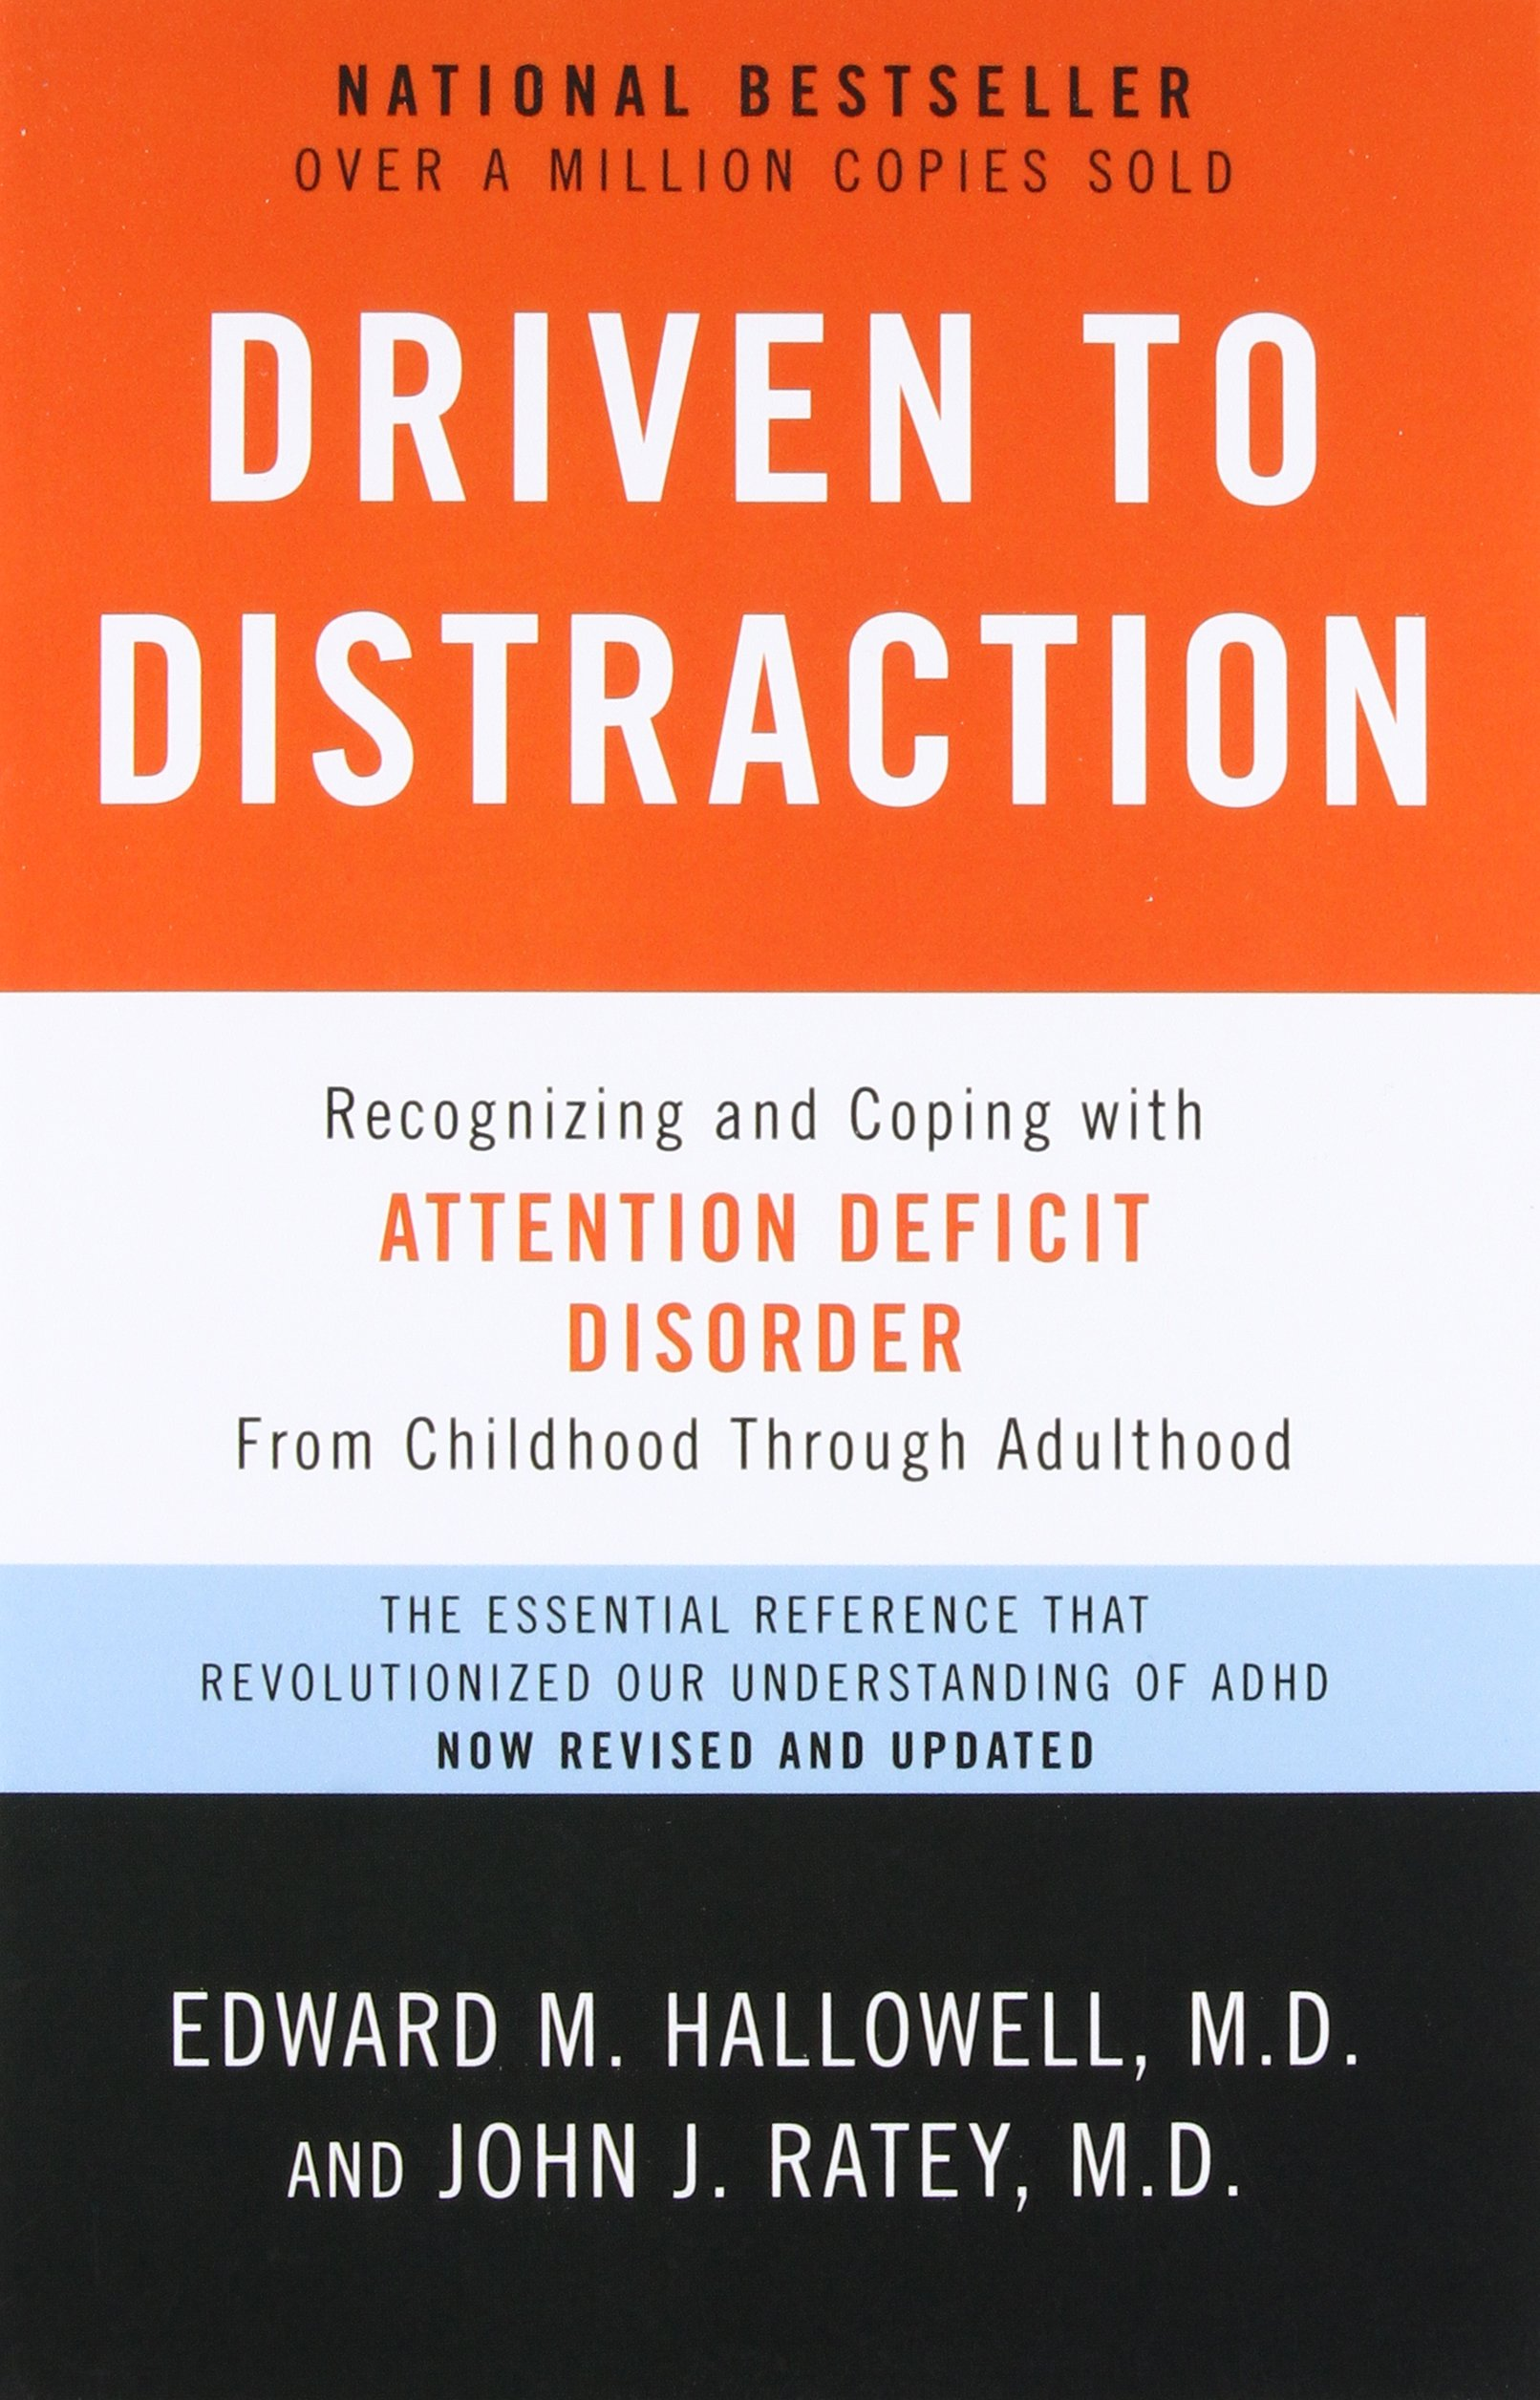 driven to distraction.jpg